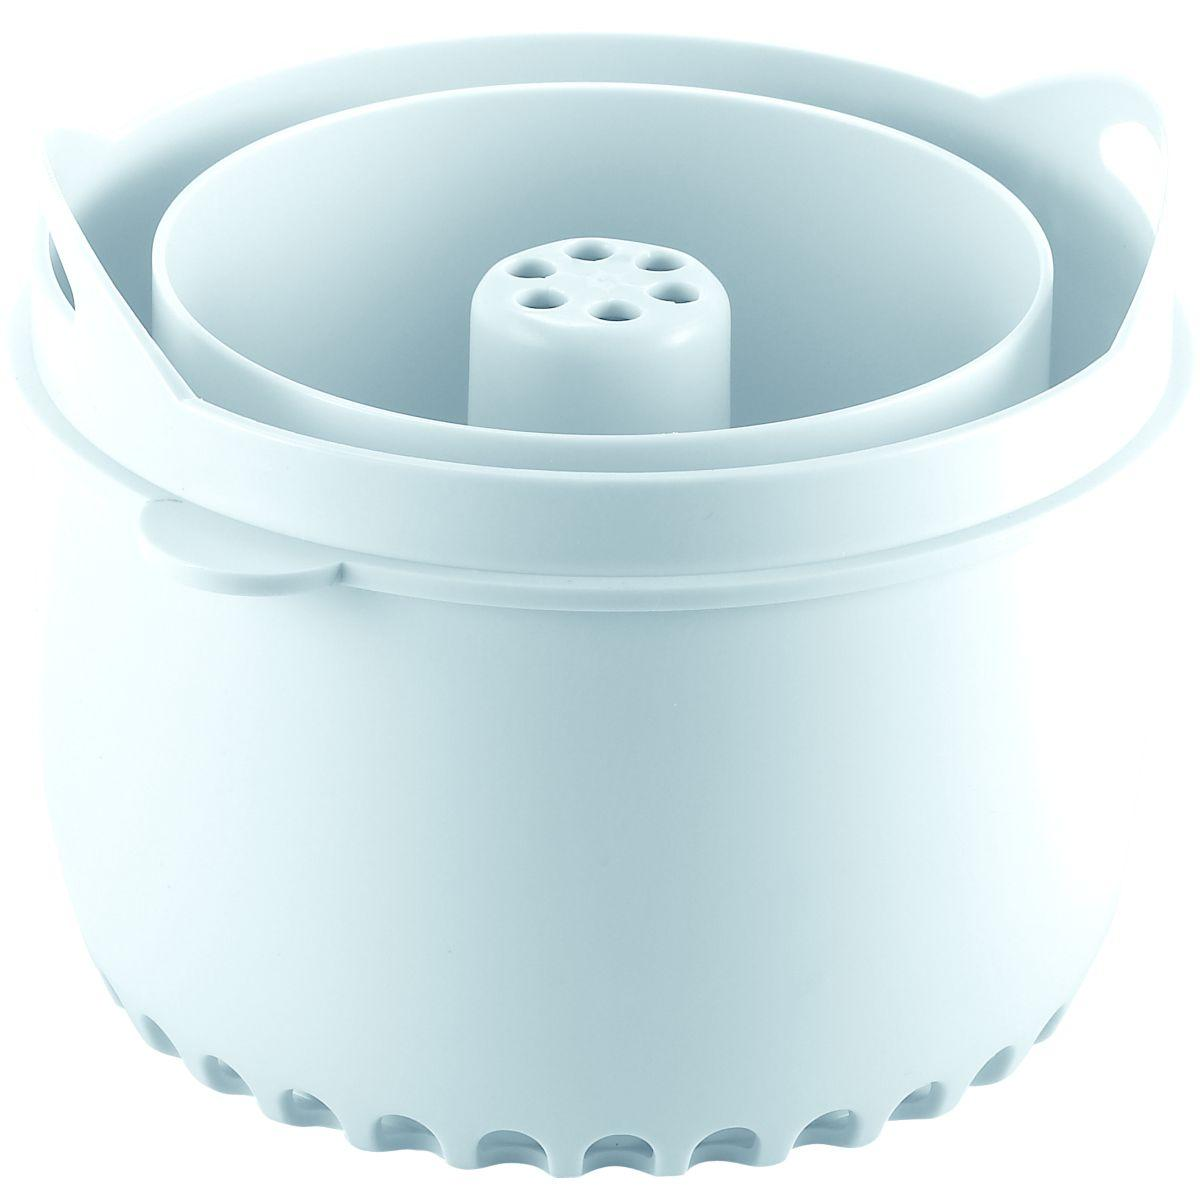 Accessoire beaba 912458 pasta/rice cooke (photo)